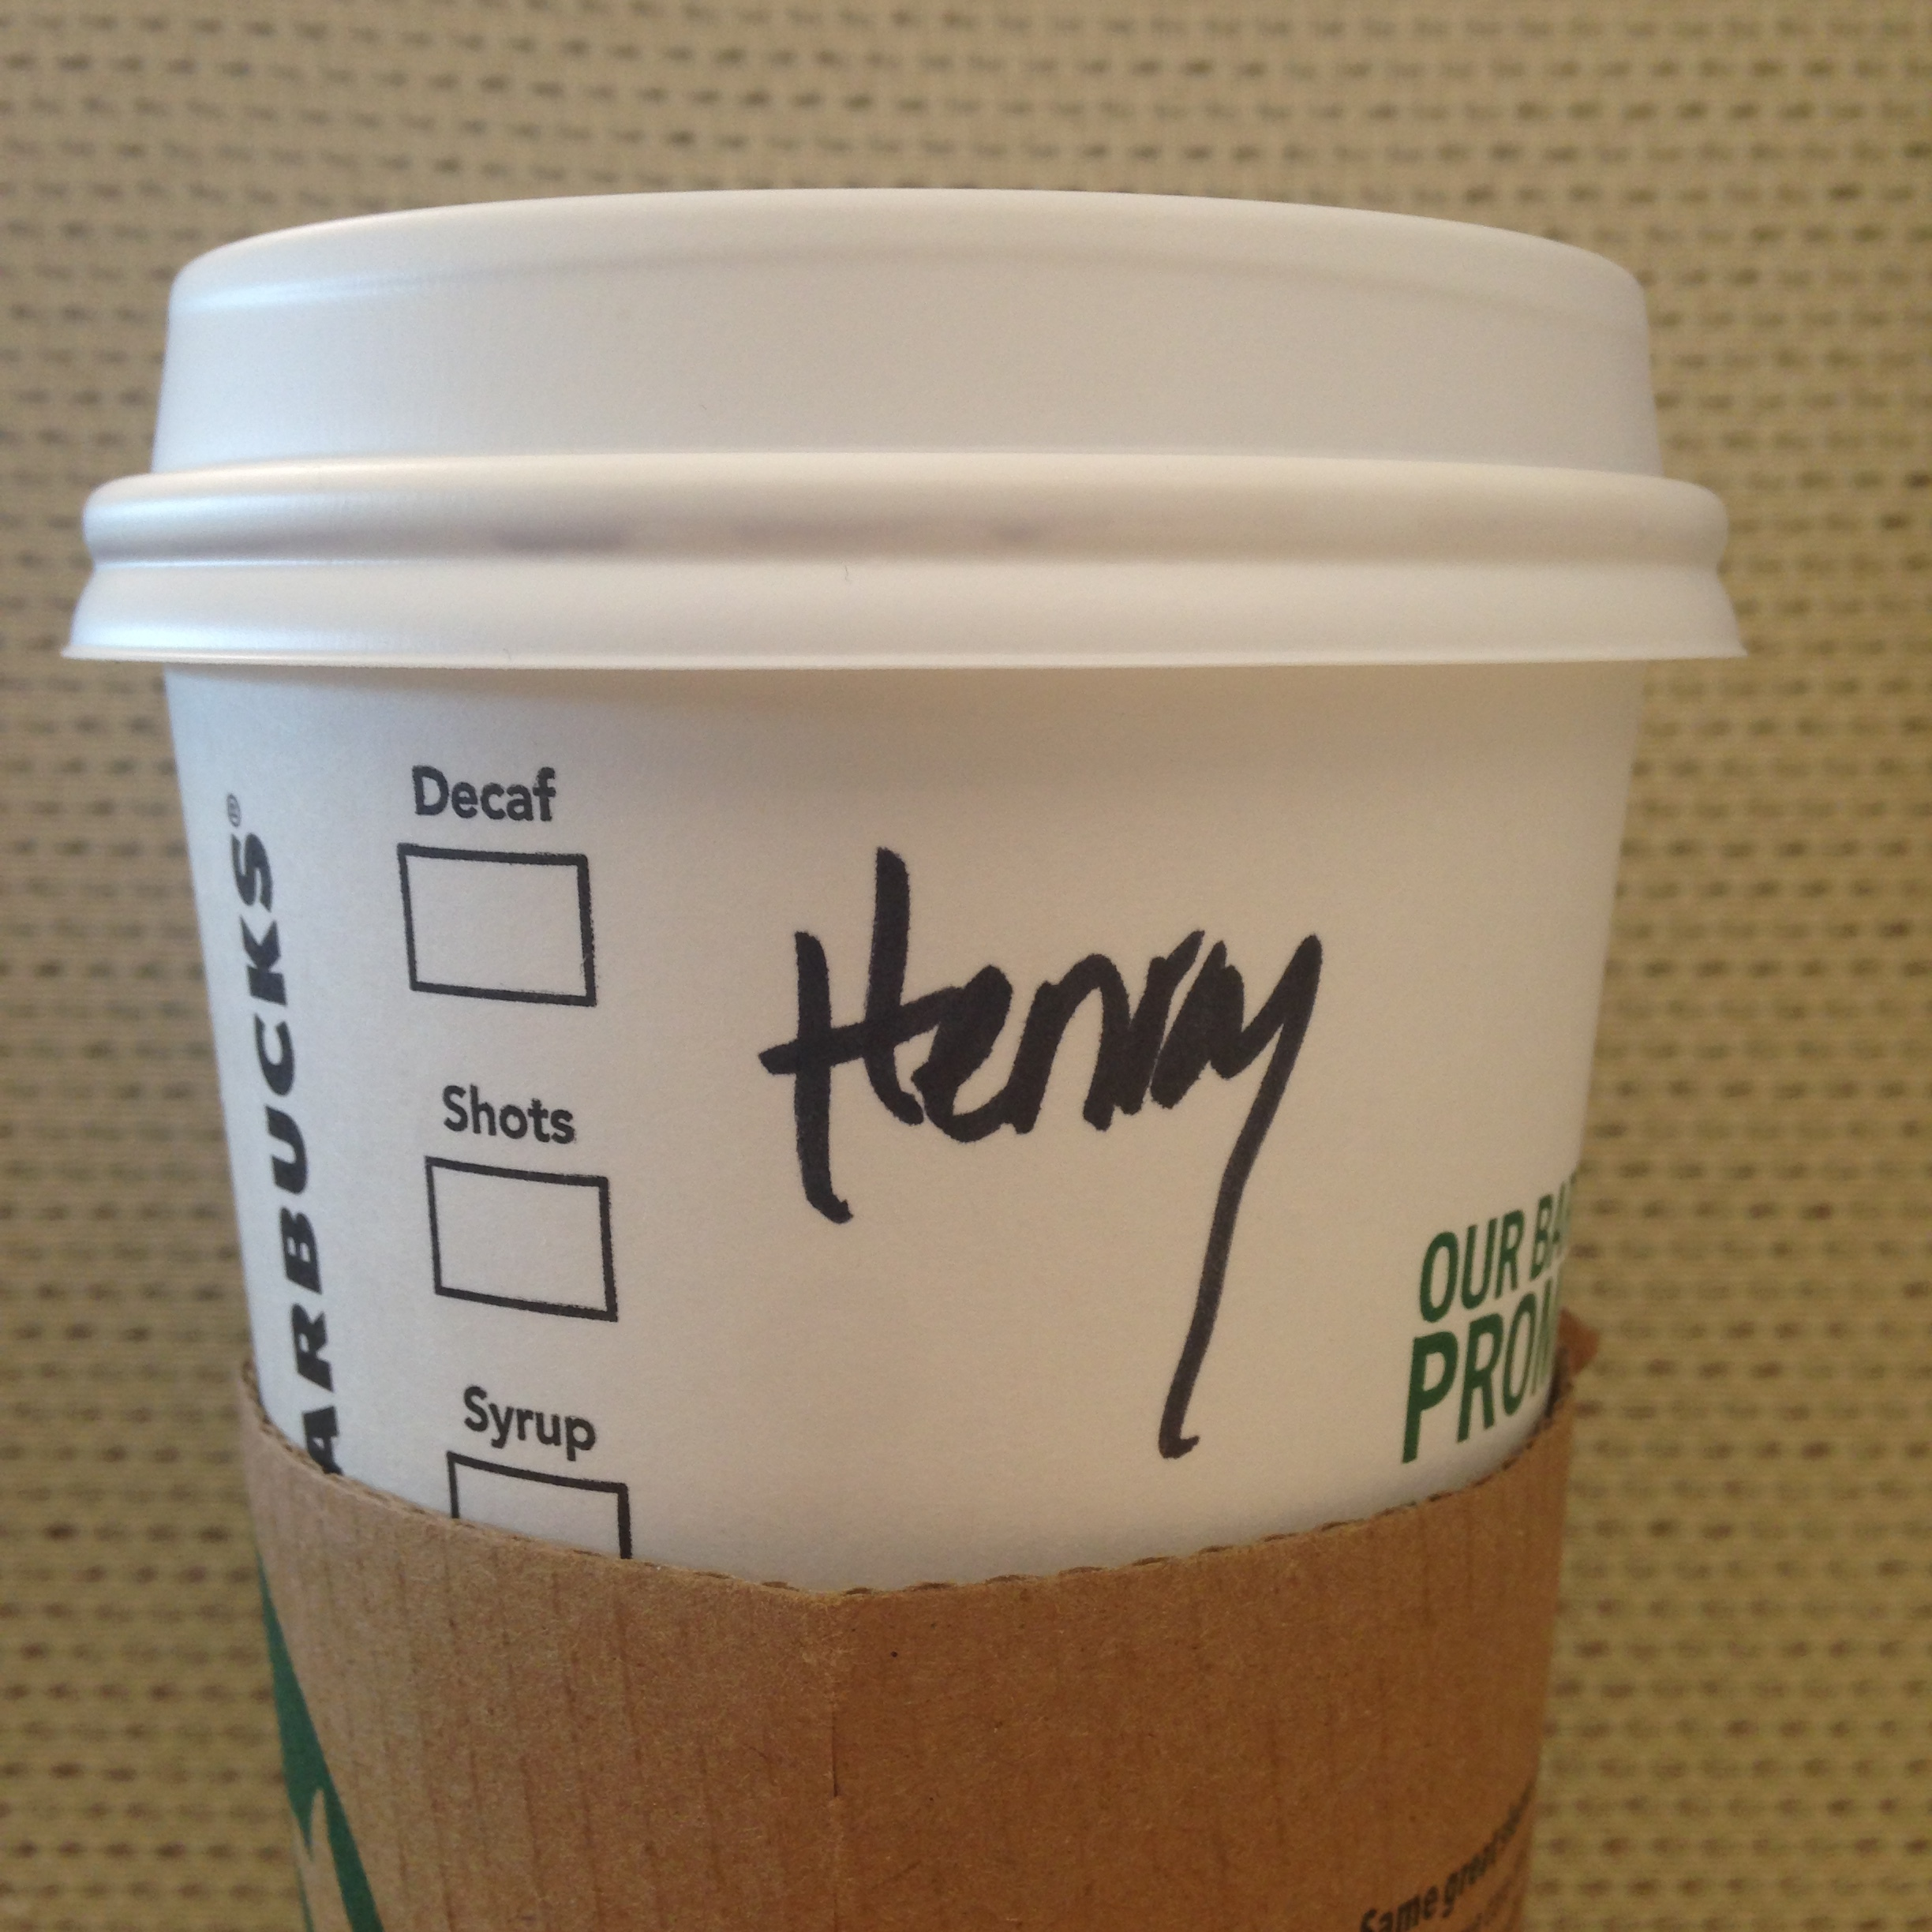 Henry - If your name's Dennis, why change it to Henry?Written and narrated by Dennis FunkPhoto by Dennis Funk